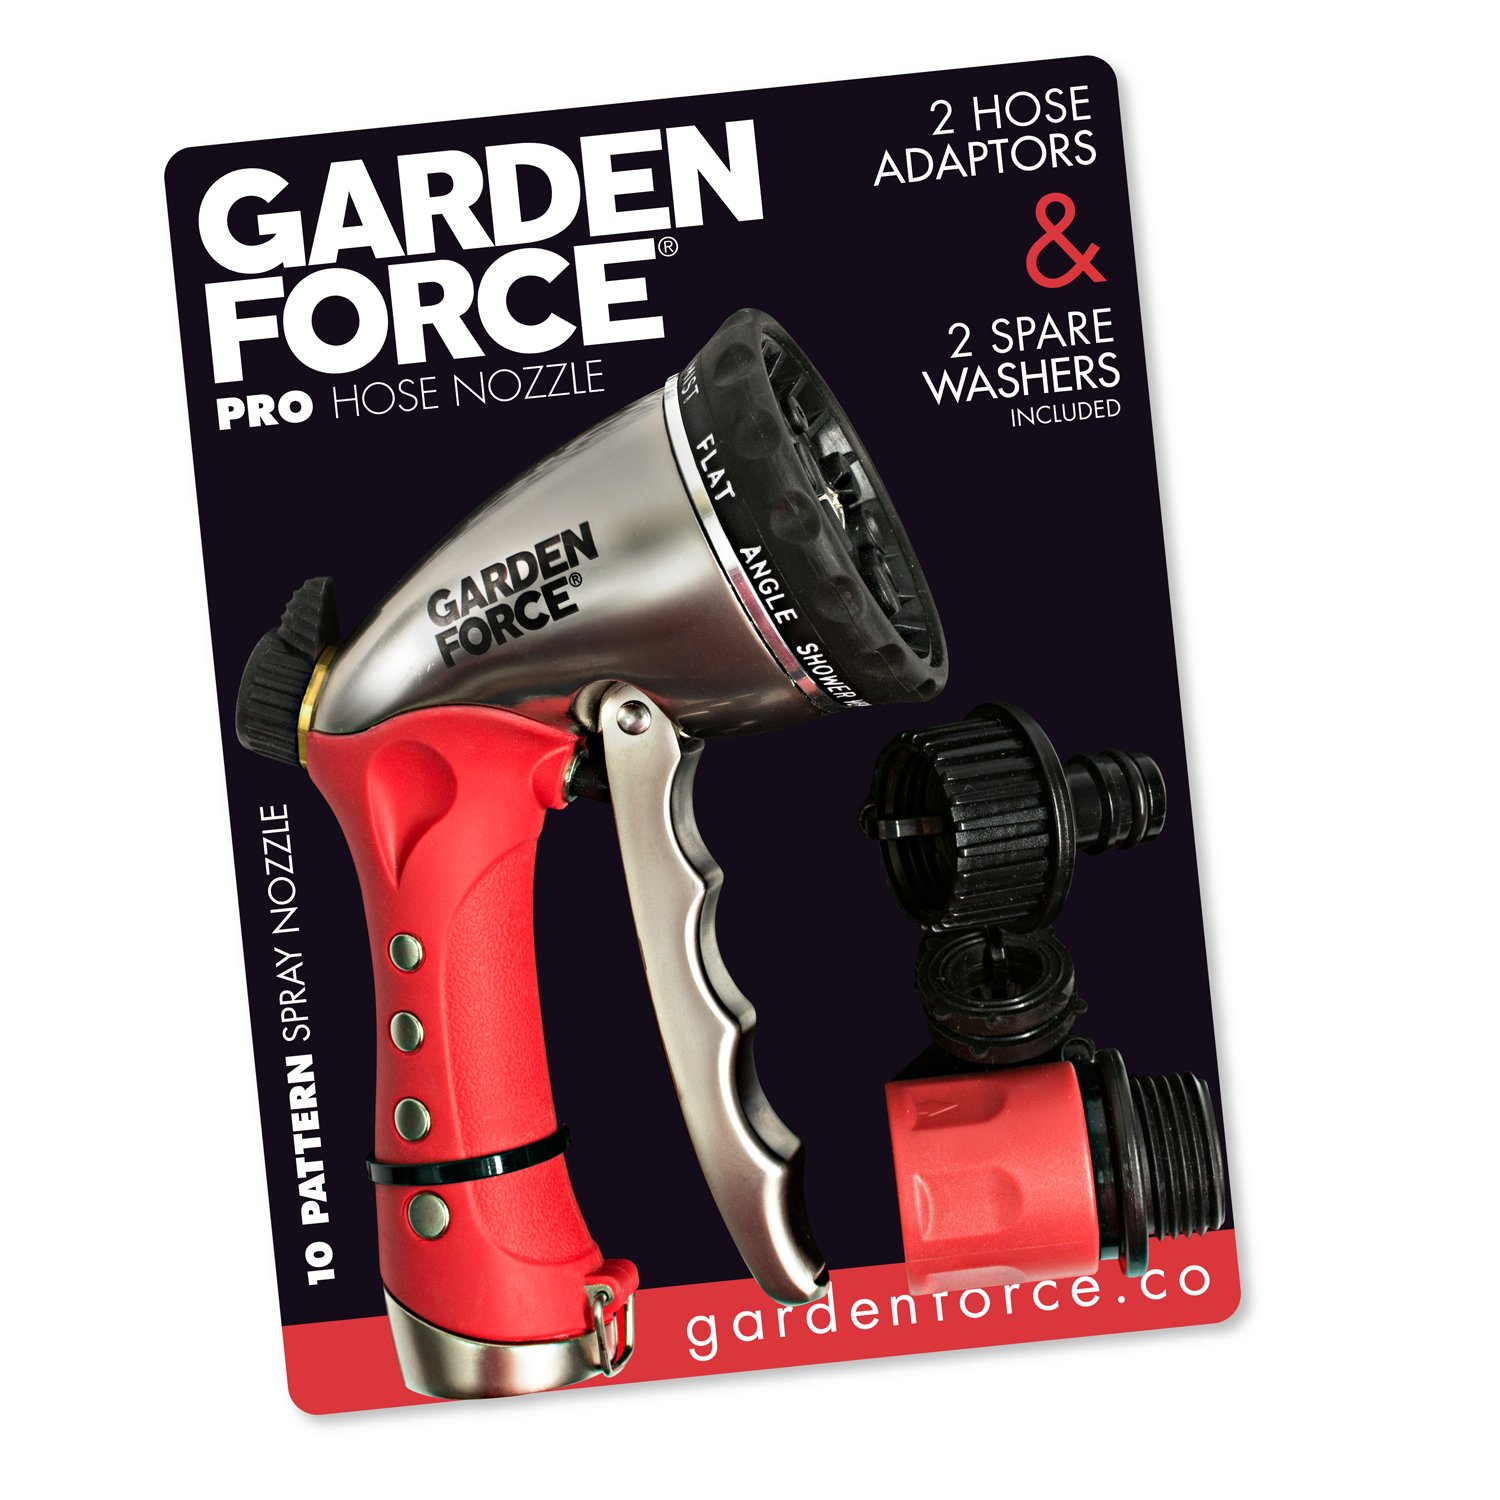 Garden Force Garden Hose Nozzle/Hand Sprayer By, 10 Spray Patterns, Heavy Duty Leak Proof Zinc Alloy Design, Rust Resistant Chrome Plating, Flow Control For Precise Water Pressure, BONUS 2 Washers